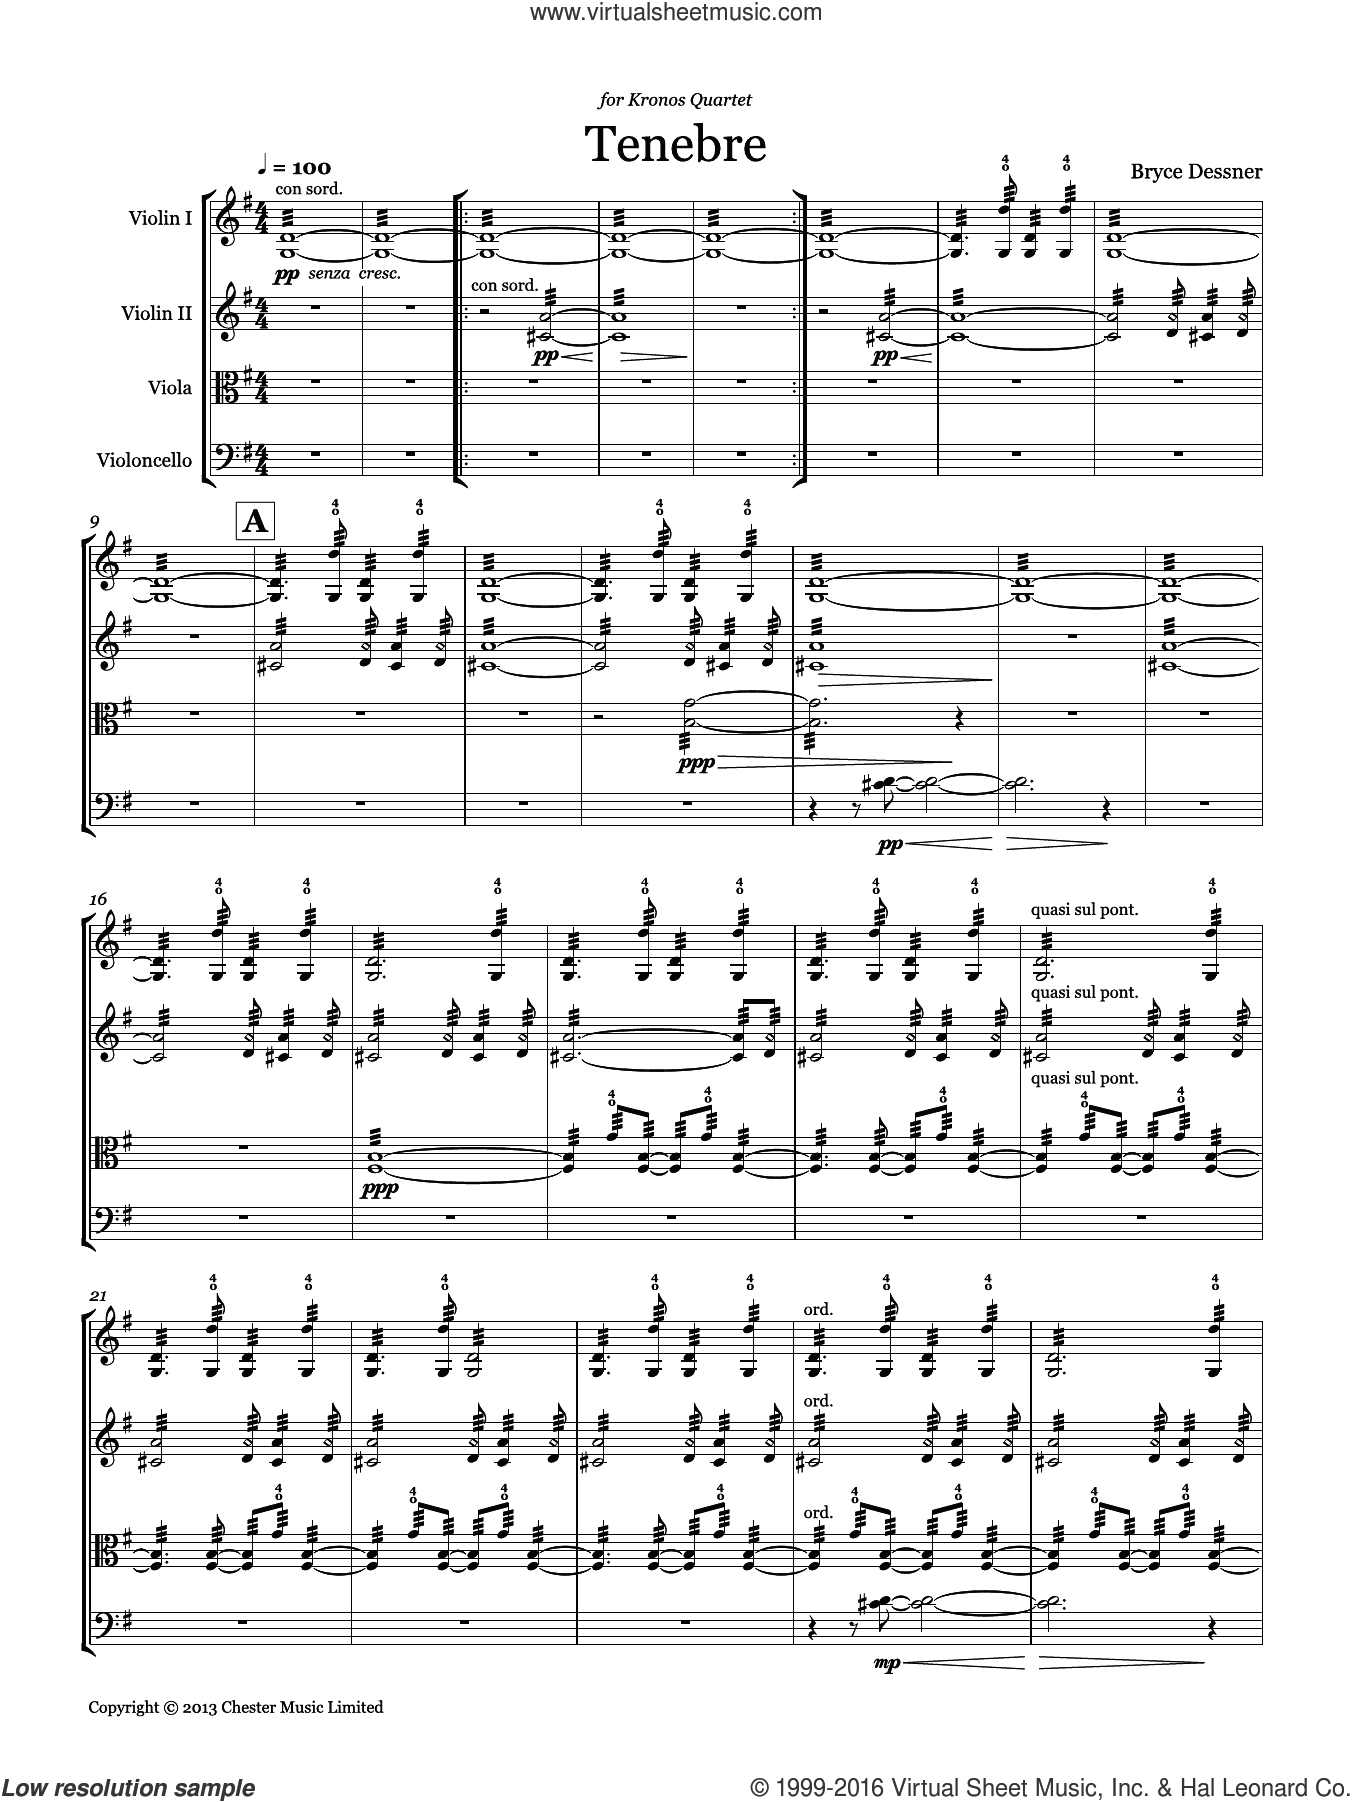 Tenebre (String quartet score and parts) sheet music for string orchestra by Bryce Dessner, classical score, intermediate. Score Image Preview.